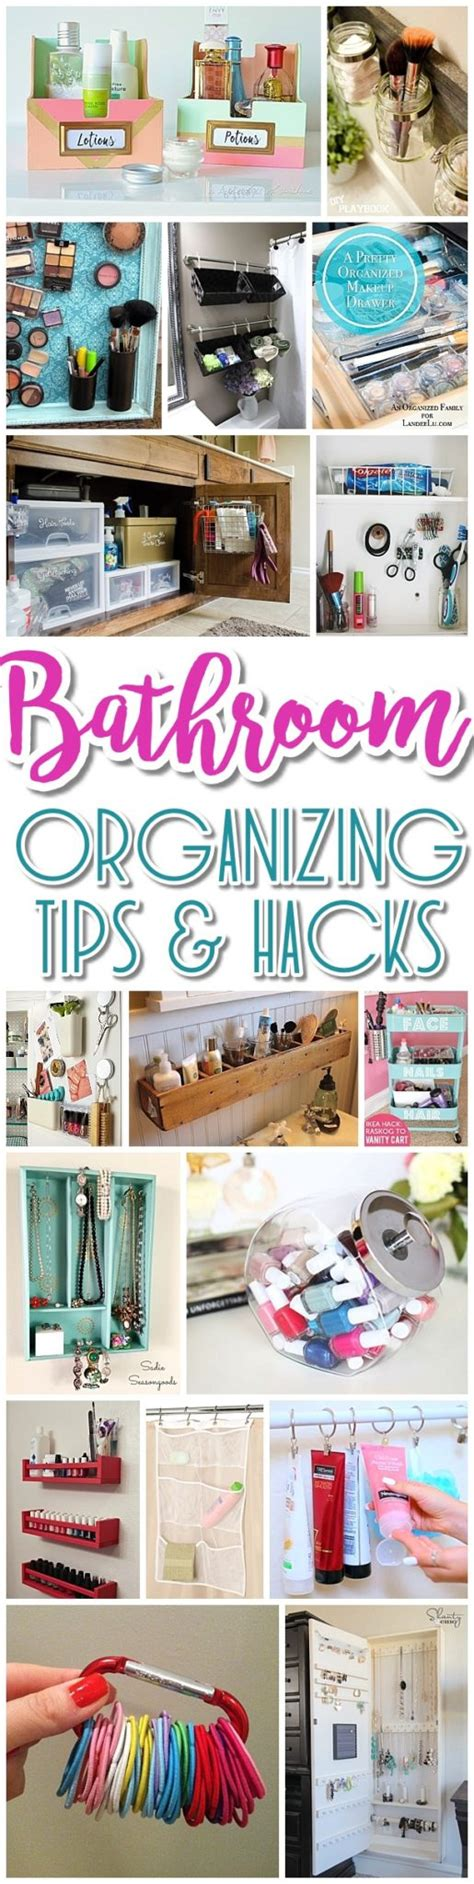 Easy Organizing Tips Cheap Most Ideas For Organizing Home